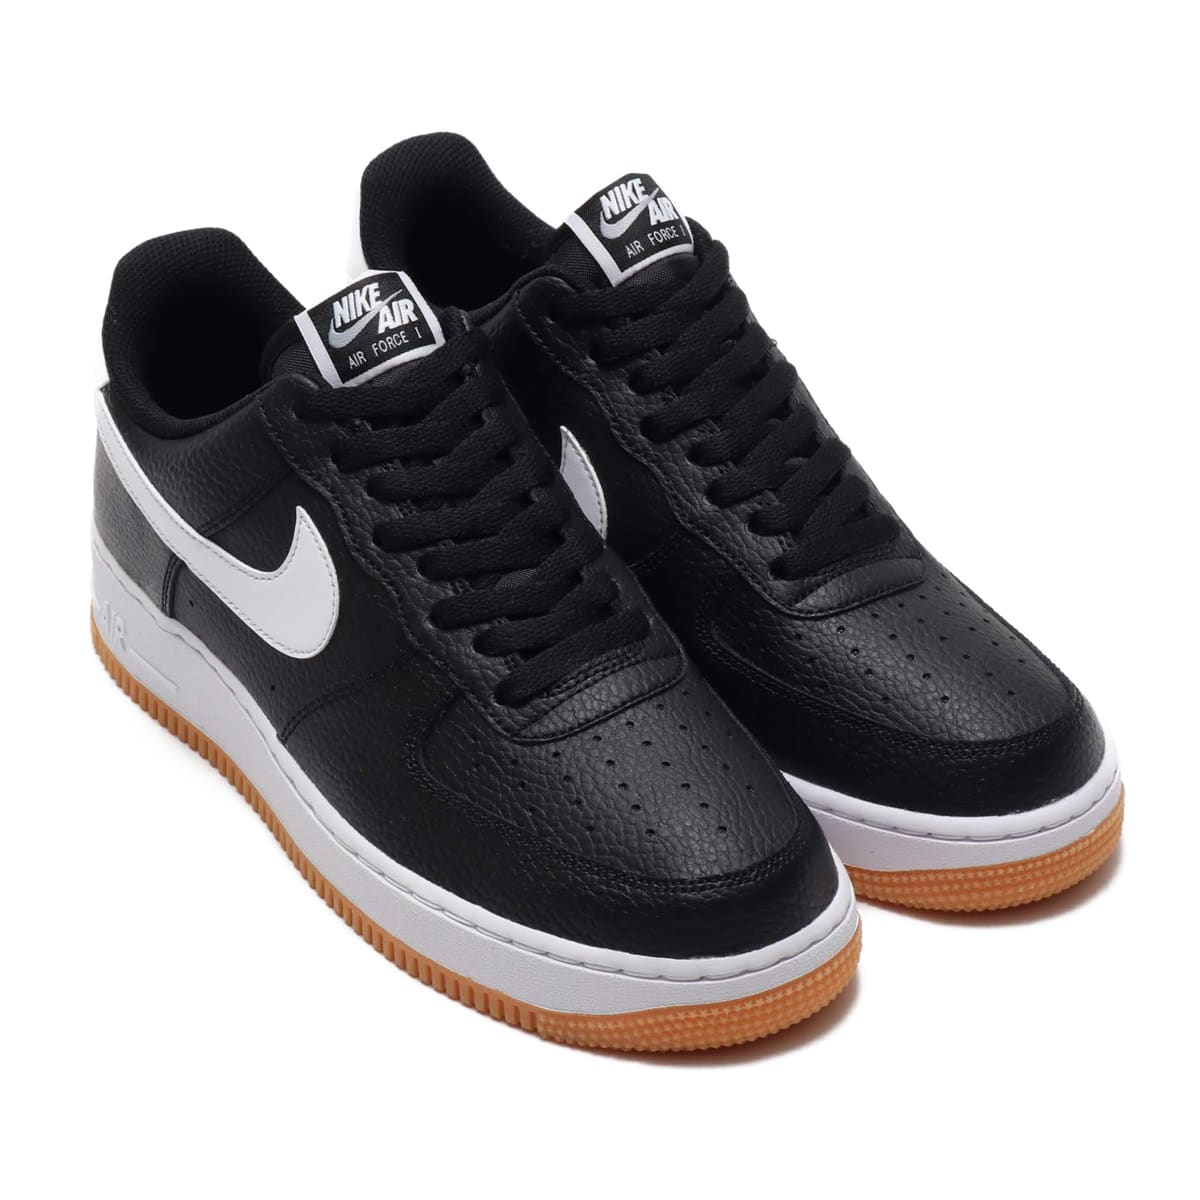 NIKE AIR FORCE 1 '07 2 BLACK/WHITE-WOLF GREY-GUM MED BROWN 19FA-I_photo_large